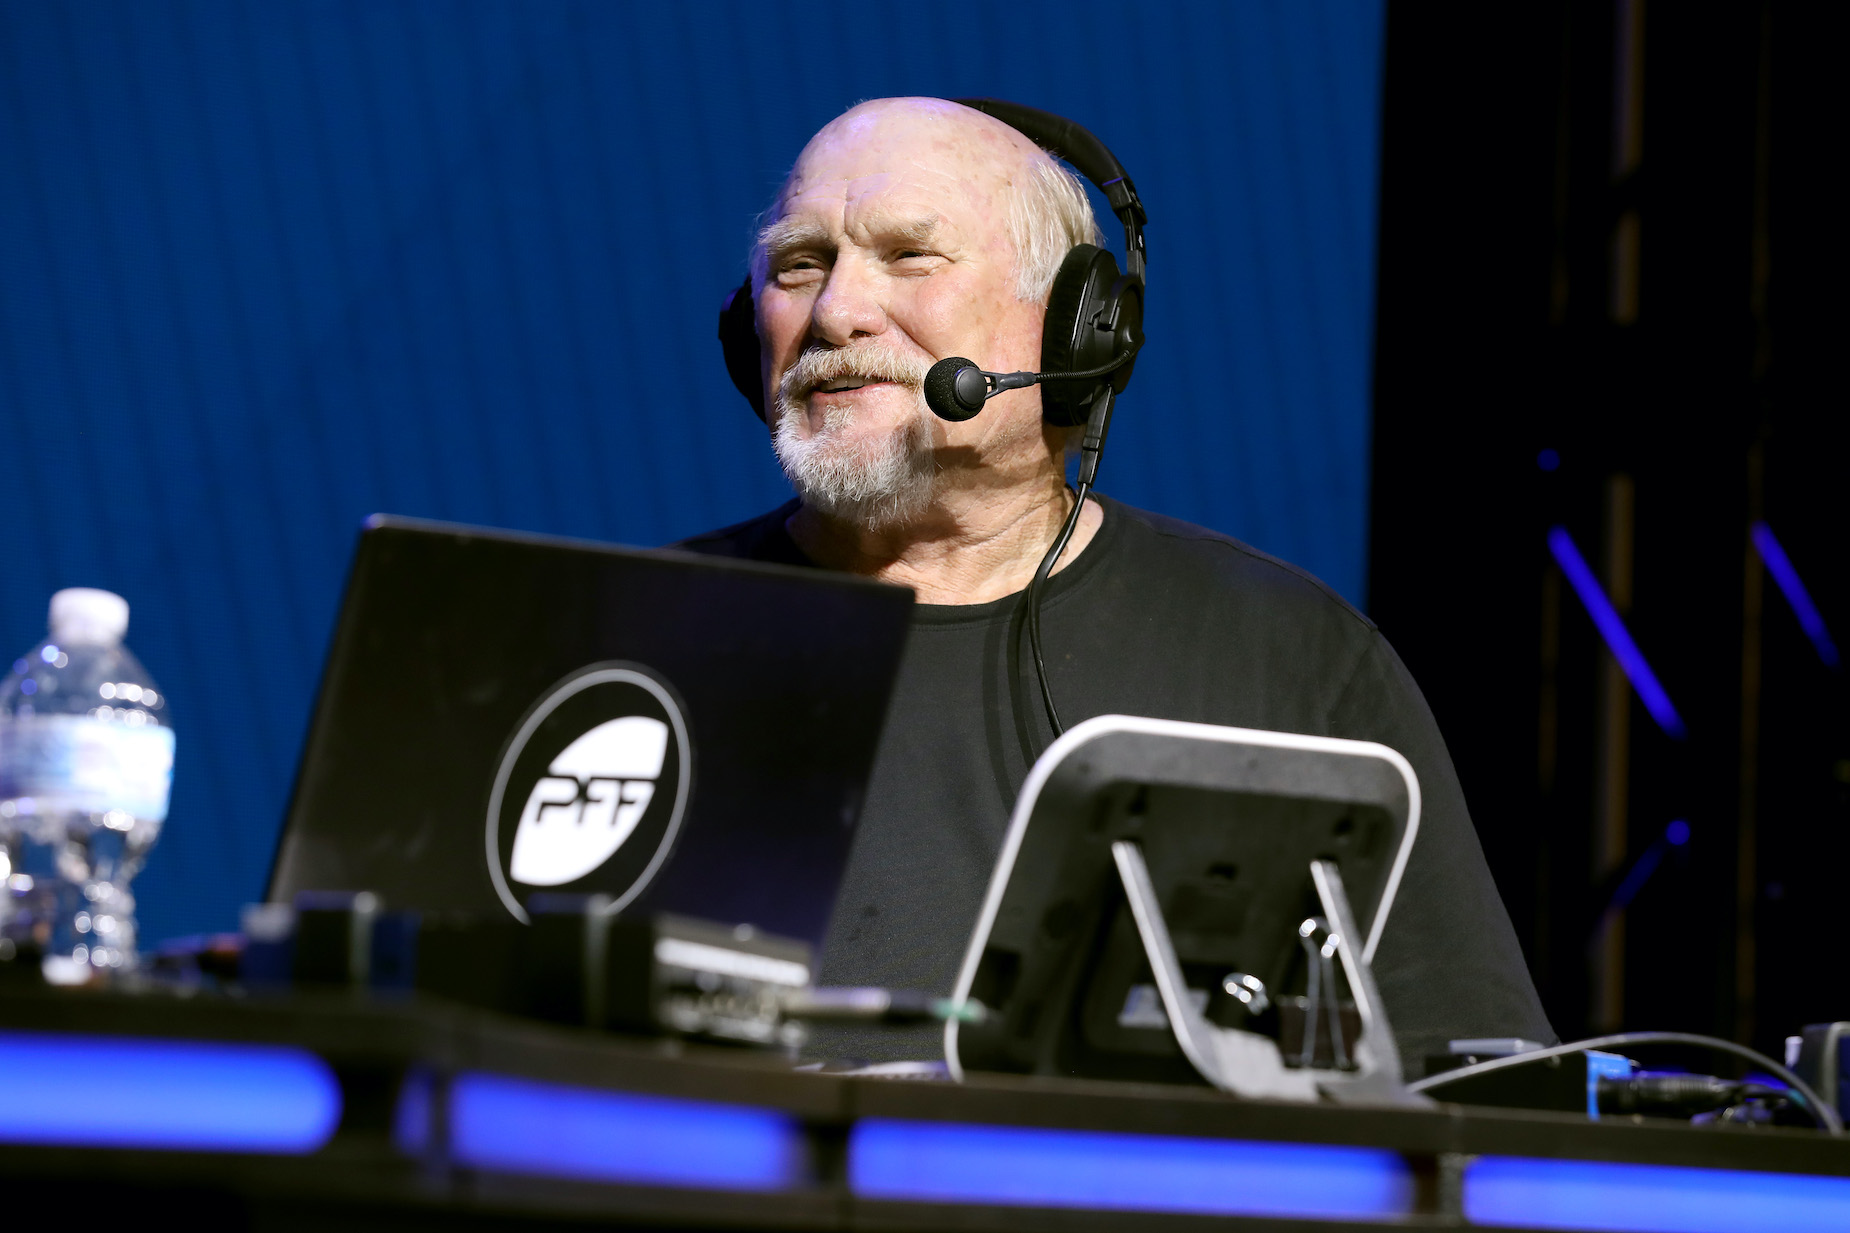 Terry Bradshaw Took Another Shot at Aaron Rodgers With a Biting Backhanded Compliment